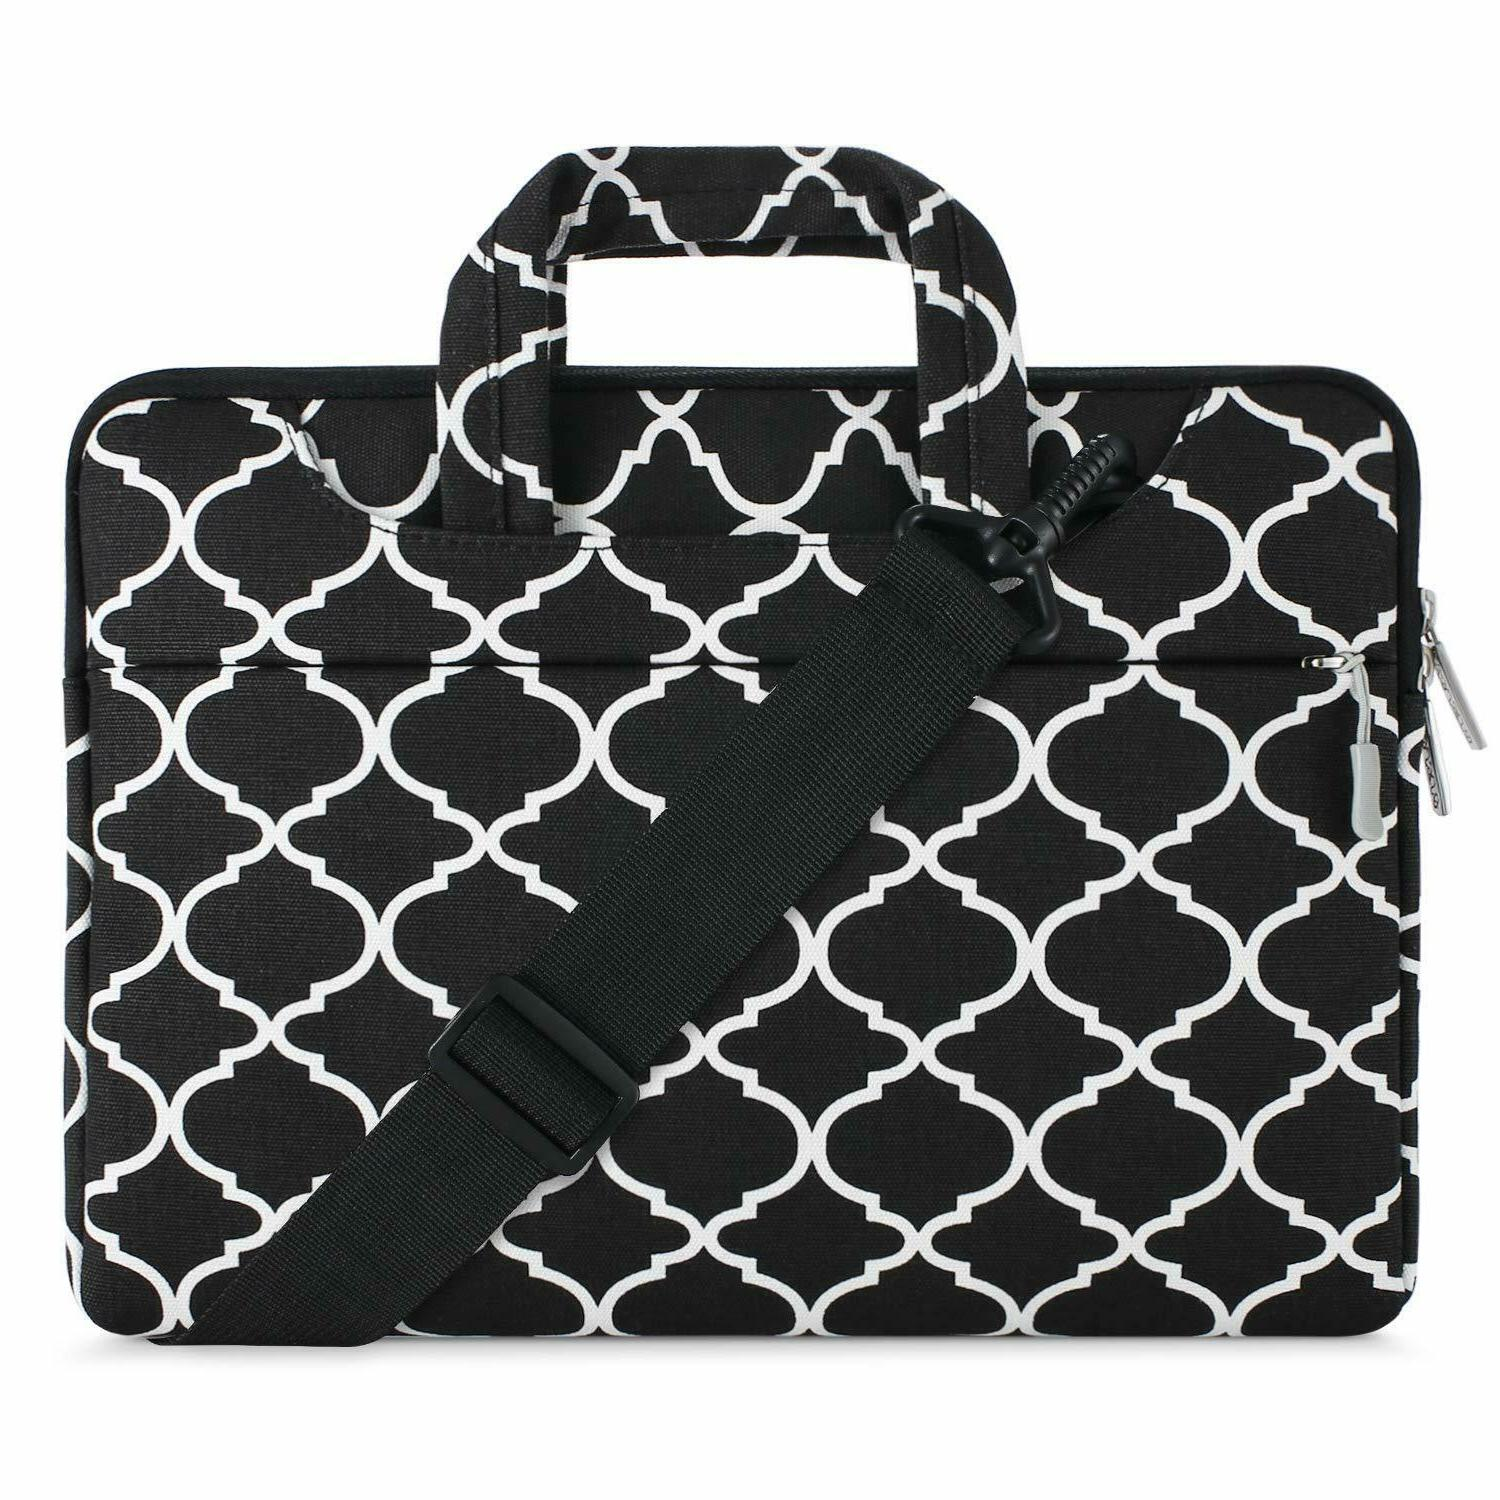 11.6 13.3 inch Laptop Bag Case for Macbook Air 13